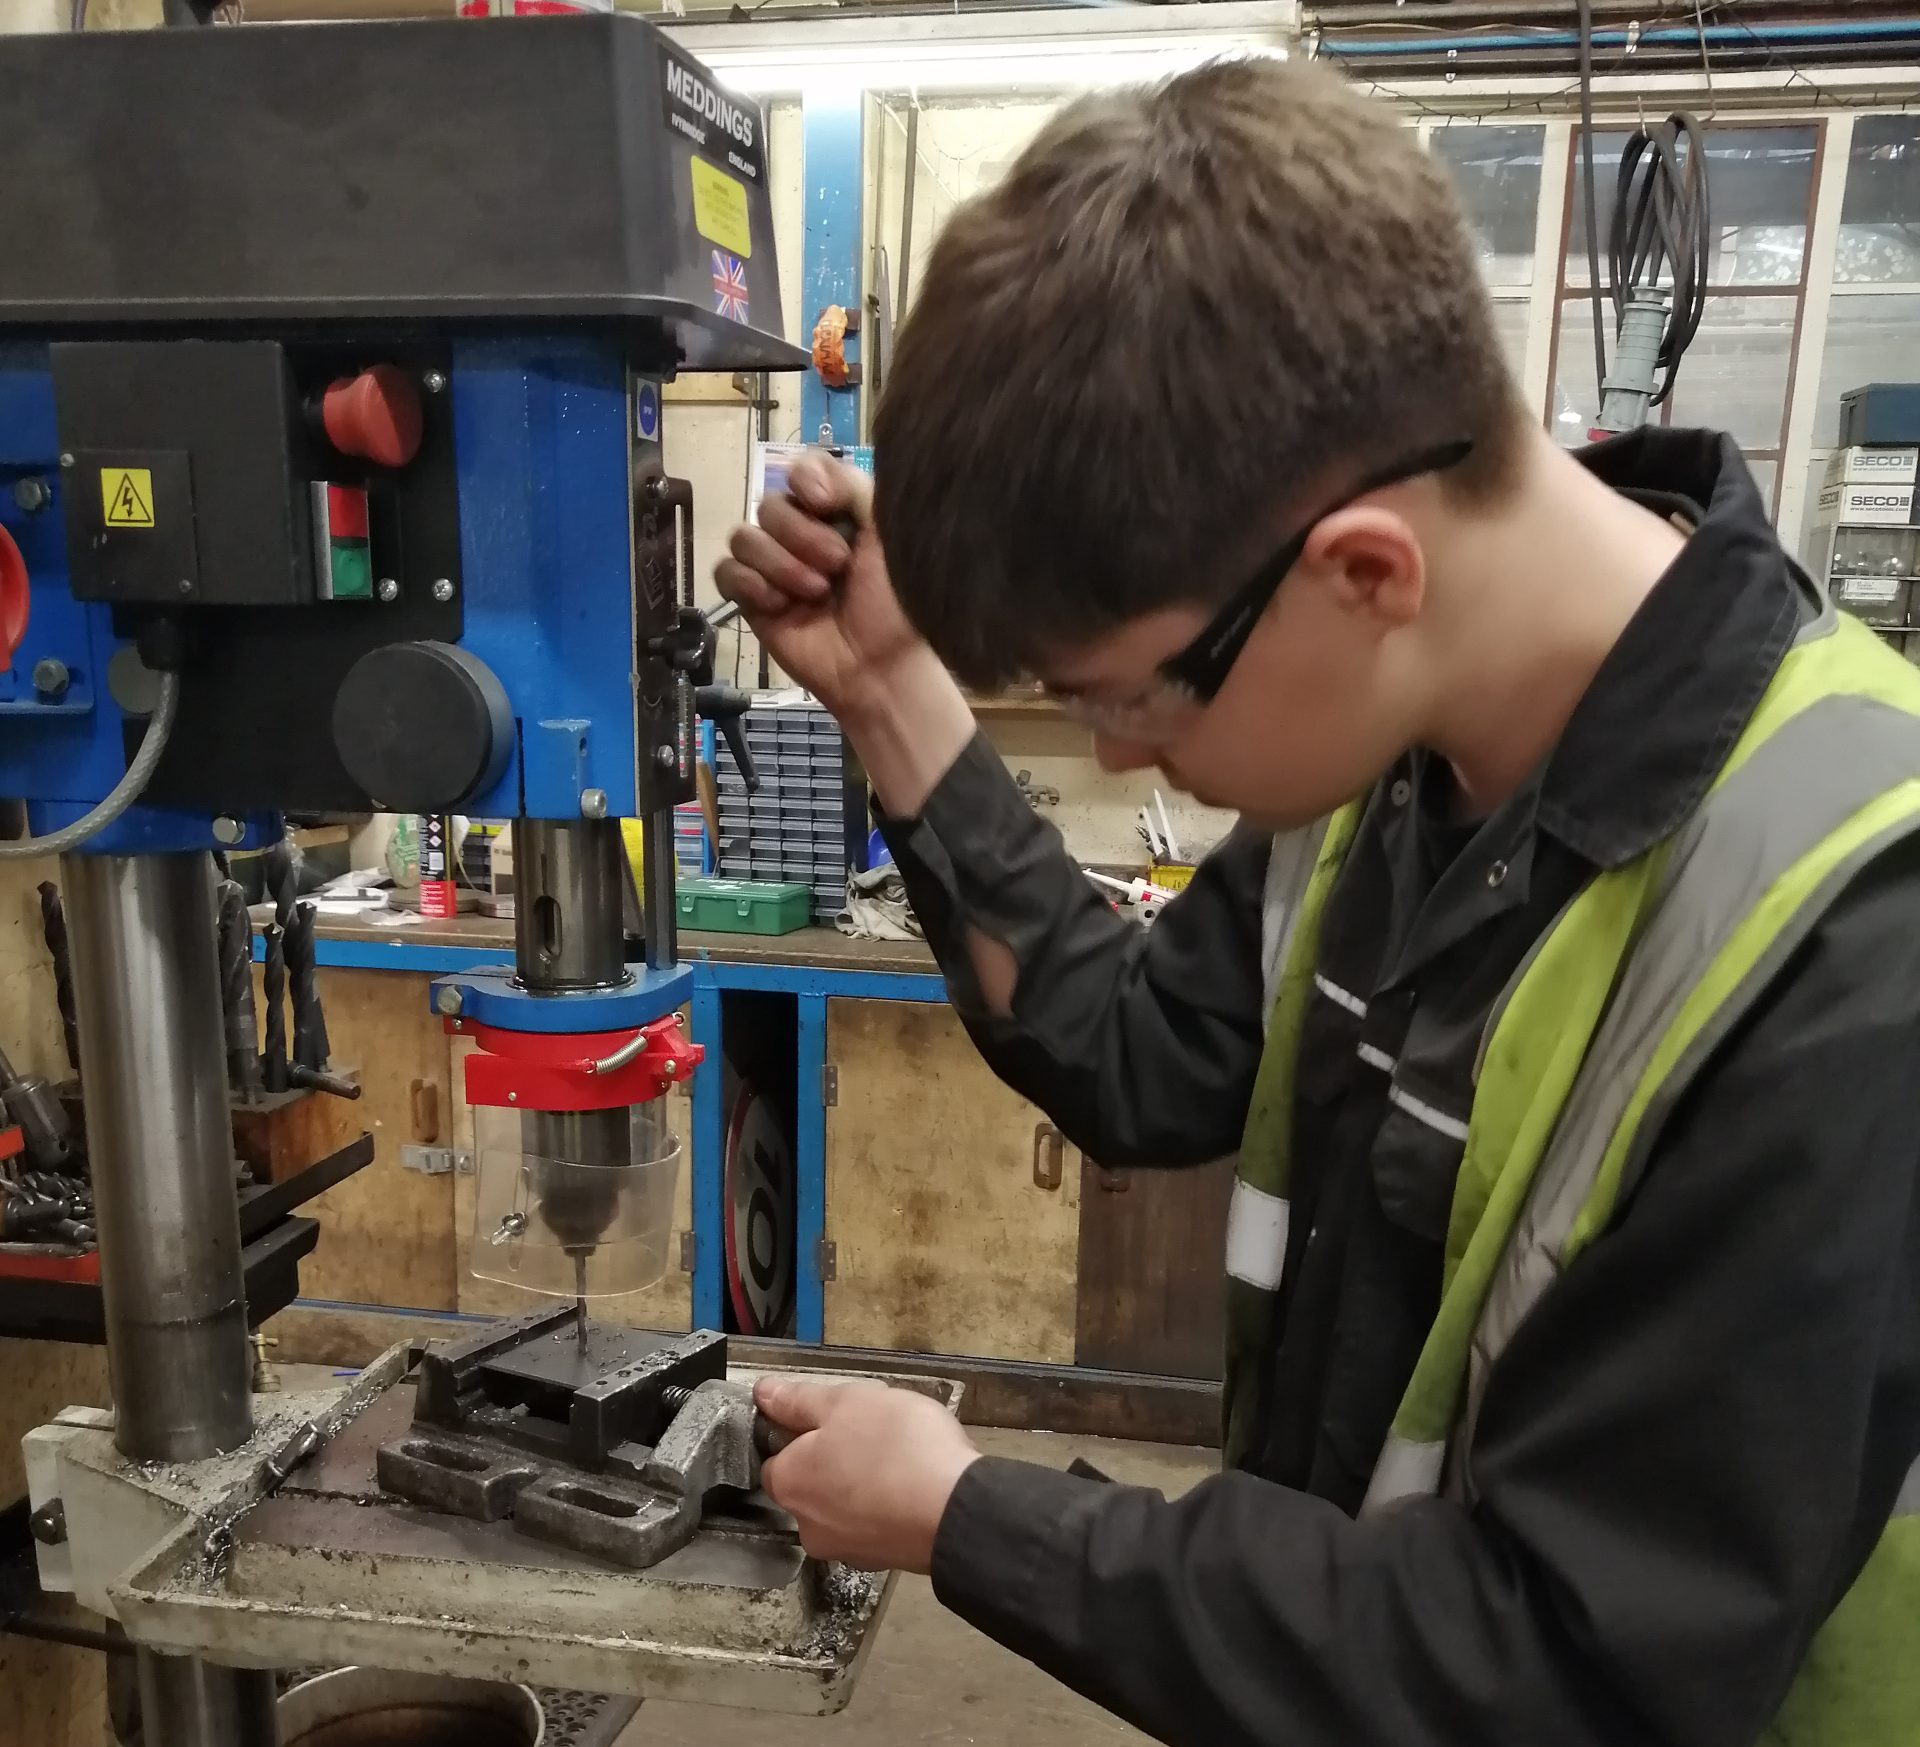 National Apprenticeship Week: Q&A with apprentice Alex Butcher